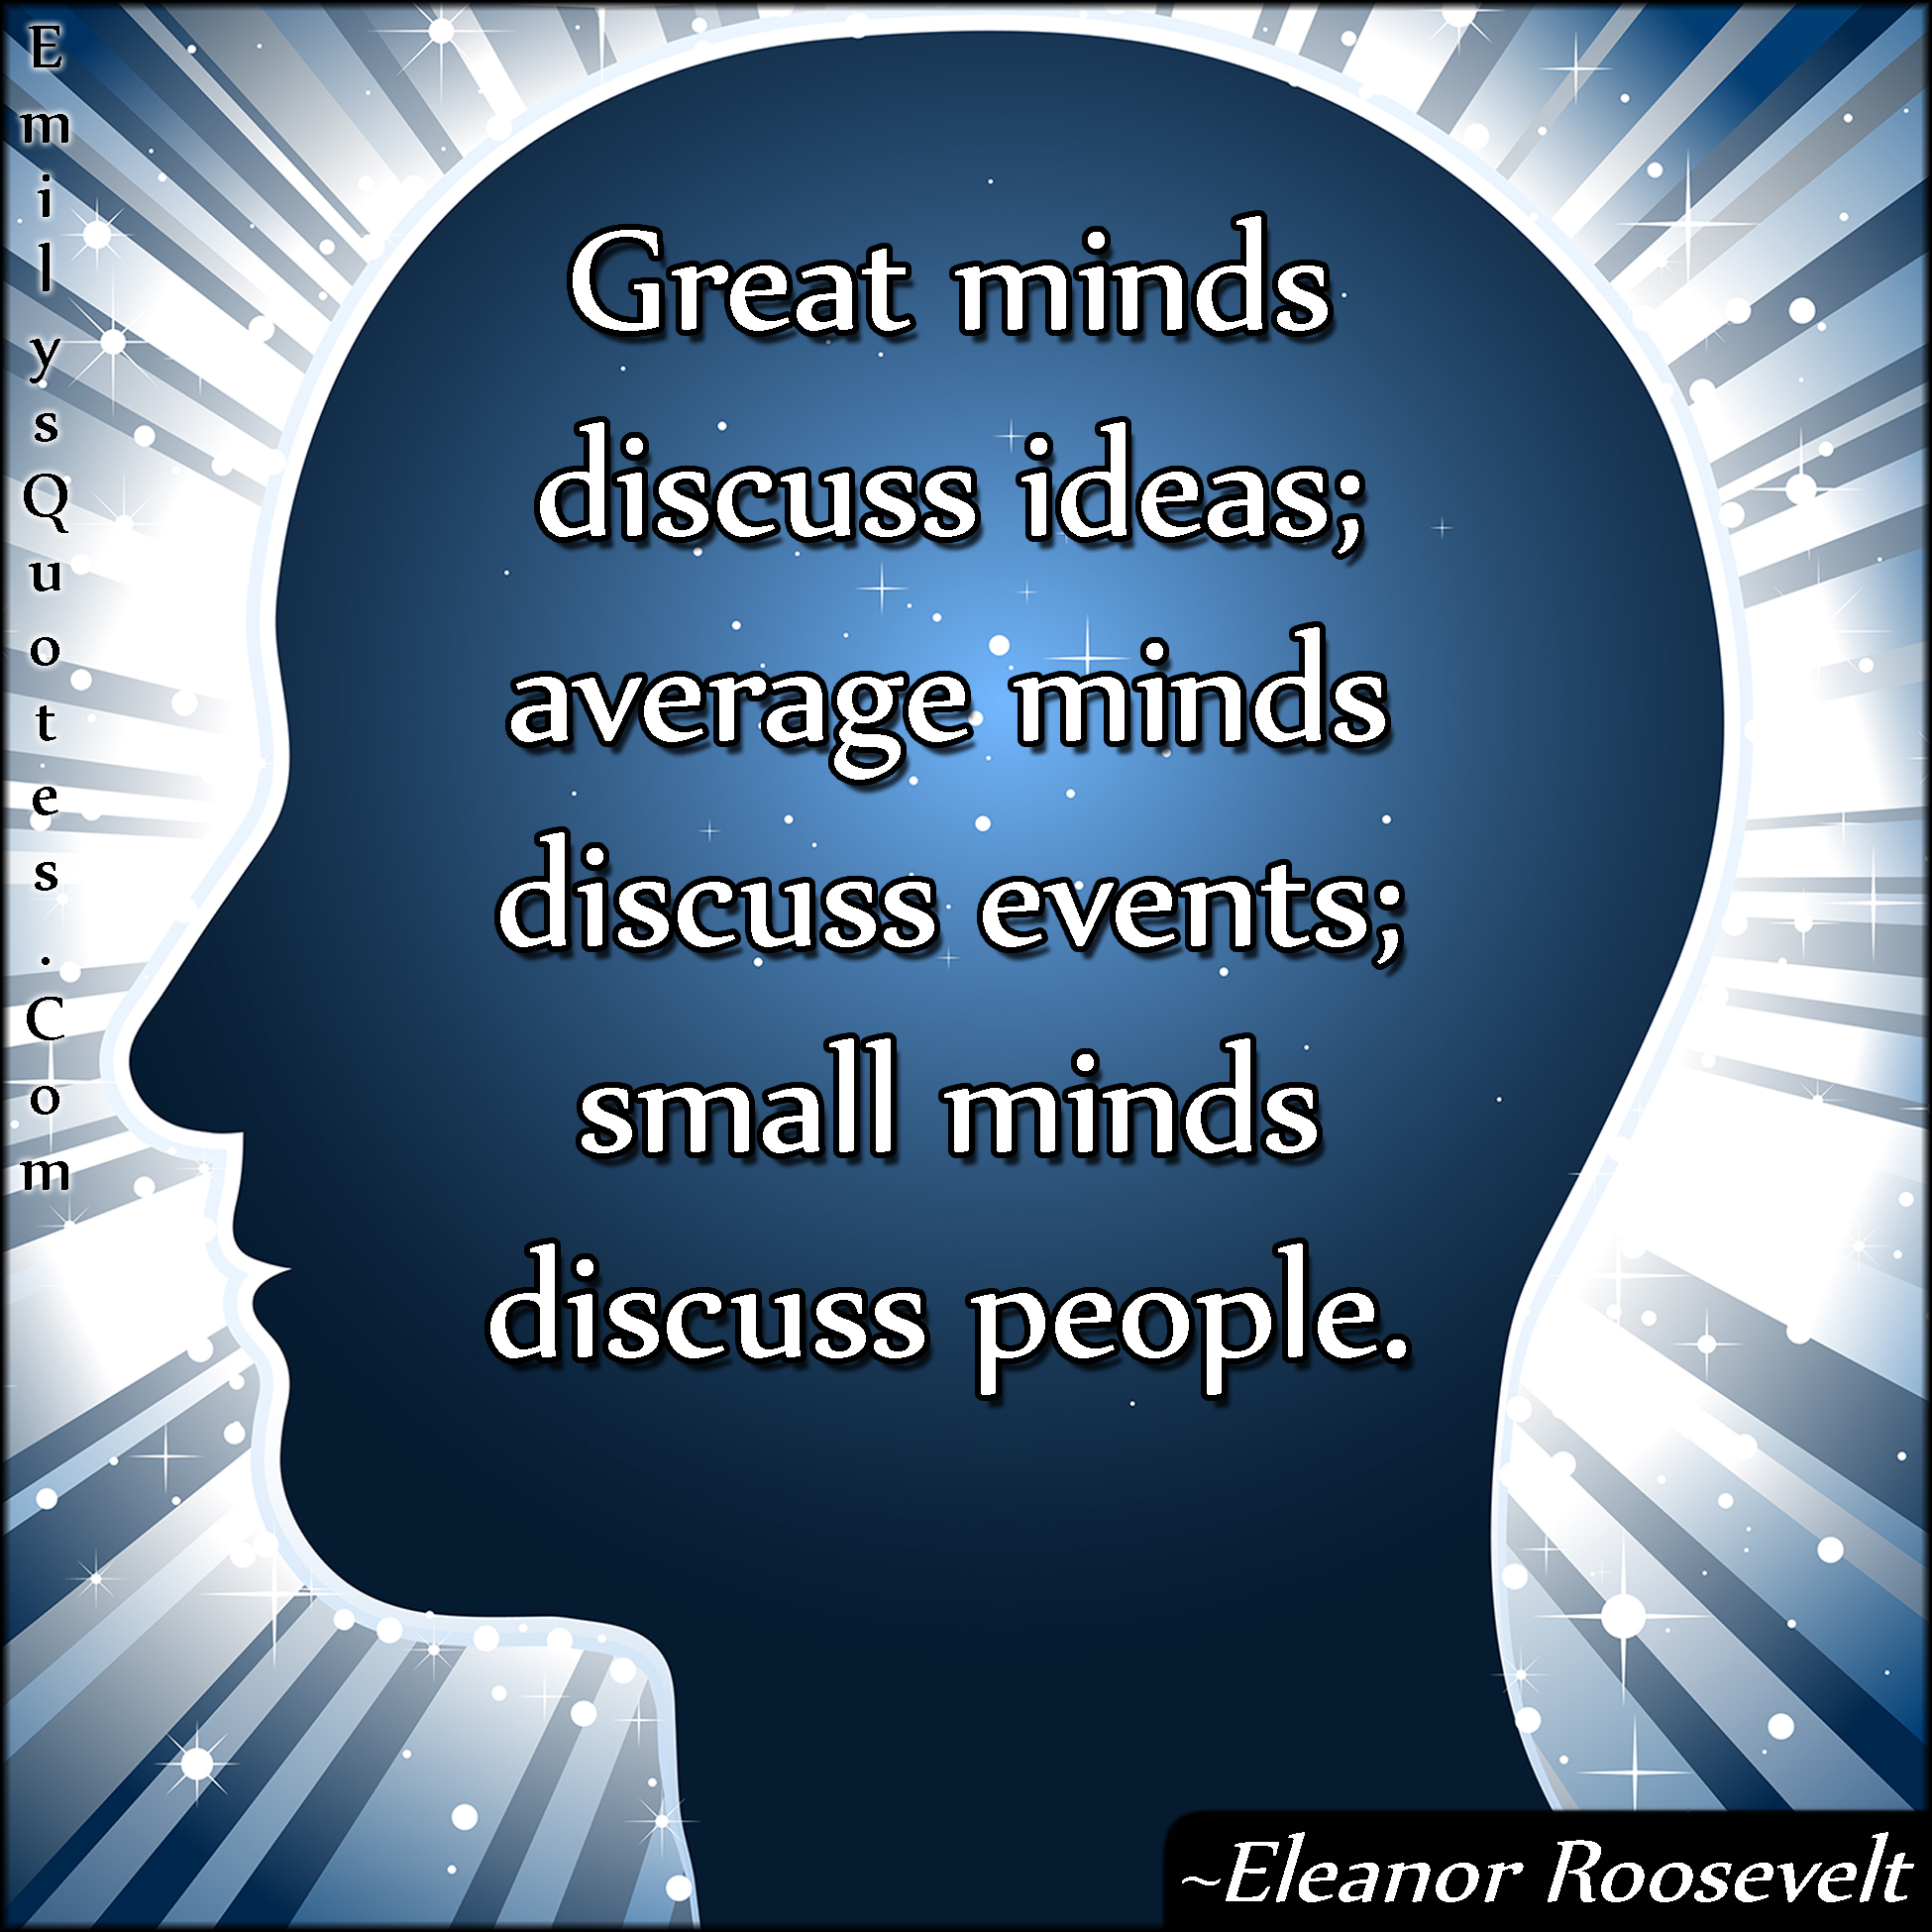 EmilysQuotes.Com - mind, difference, people, intelligent, Eleanor Roosevelt